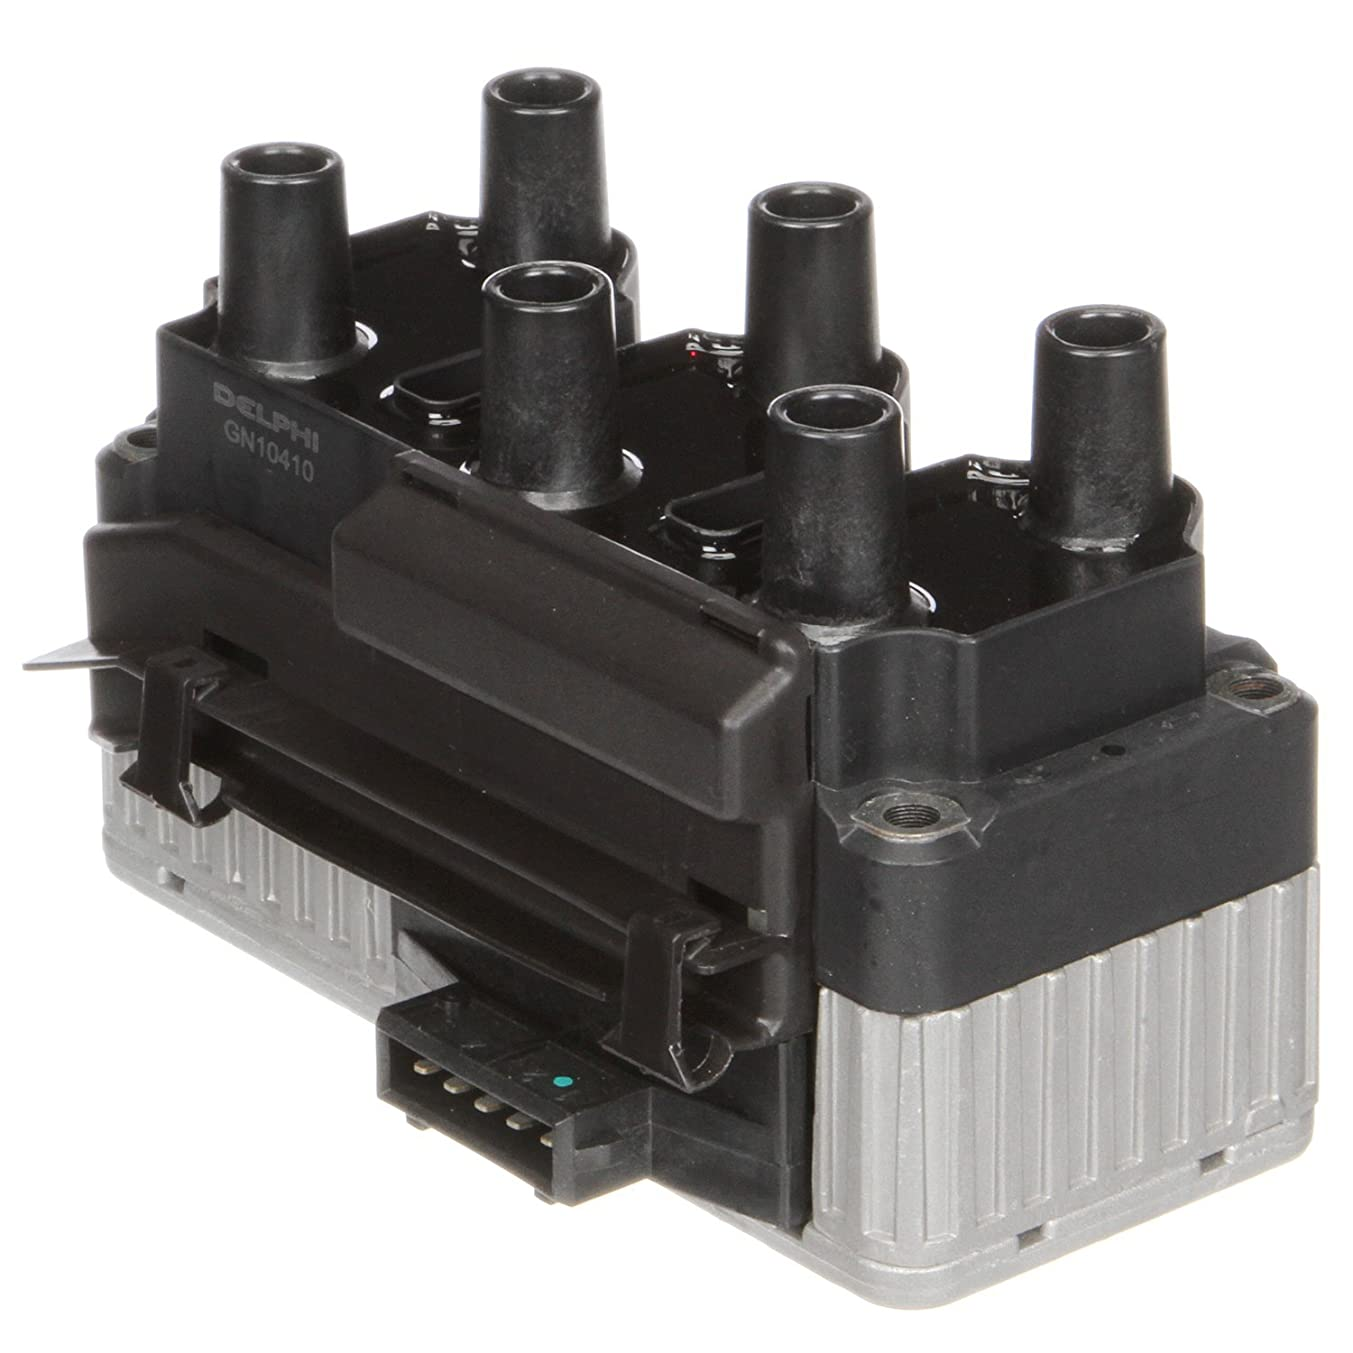 Delphi GN10410 New DIS Ignition Coil